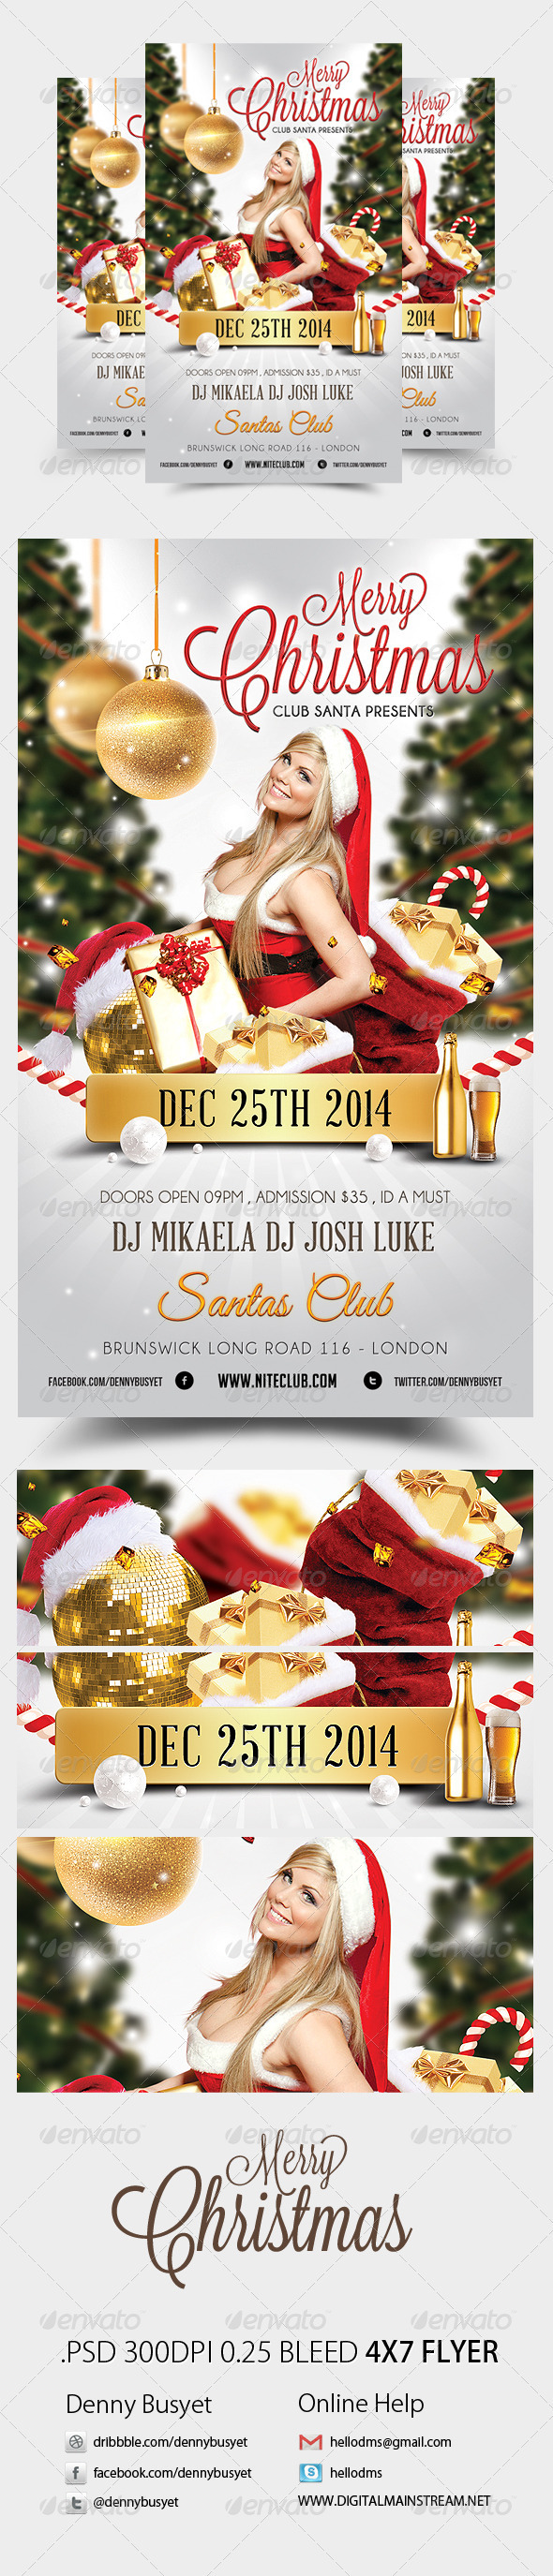 Merry Christmas Nightclub Psd Flyer Template - Holidays Events